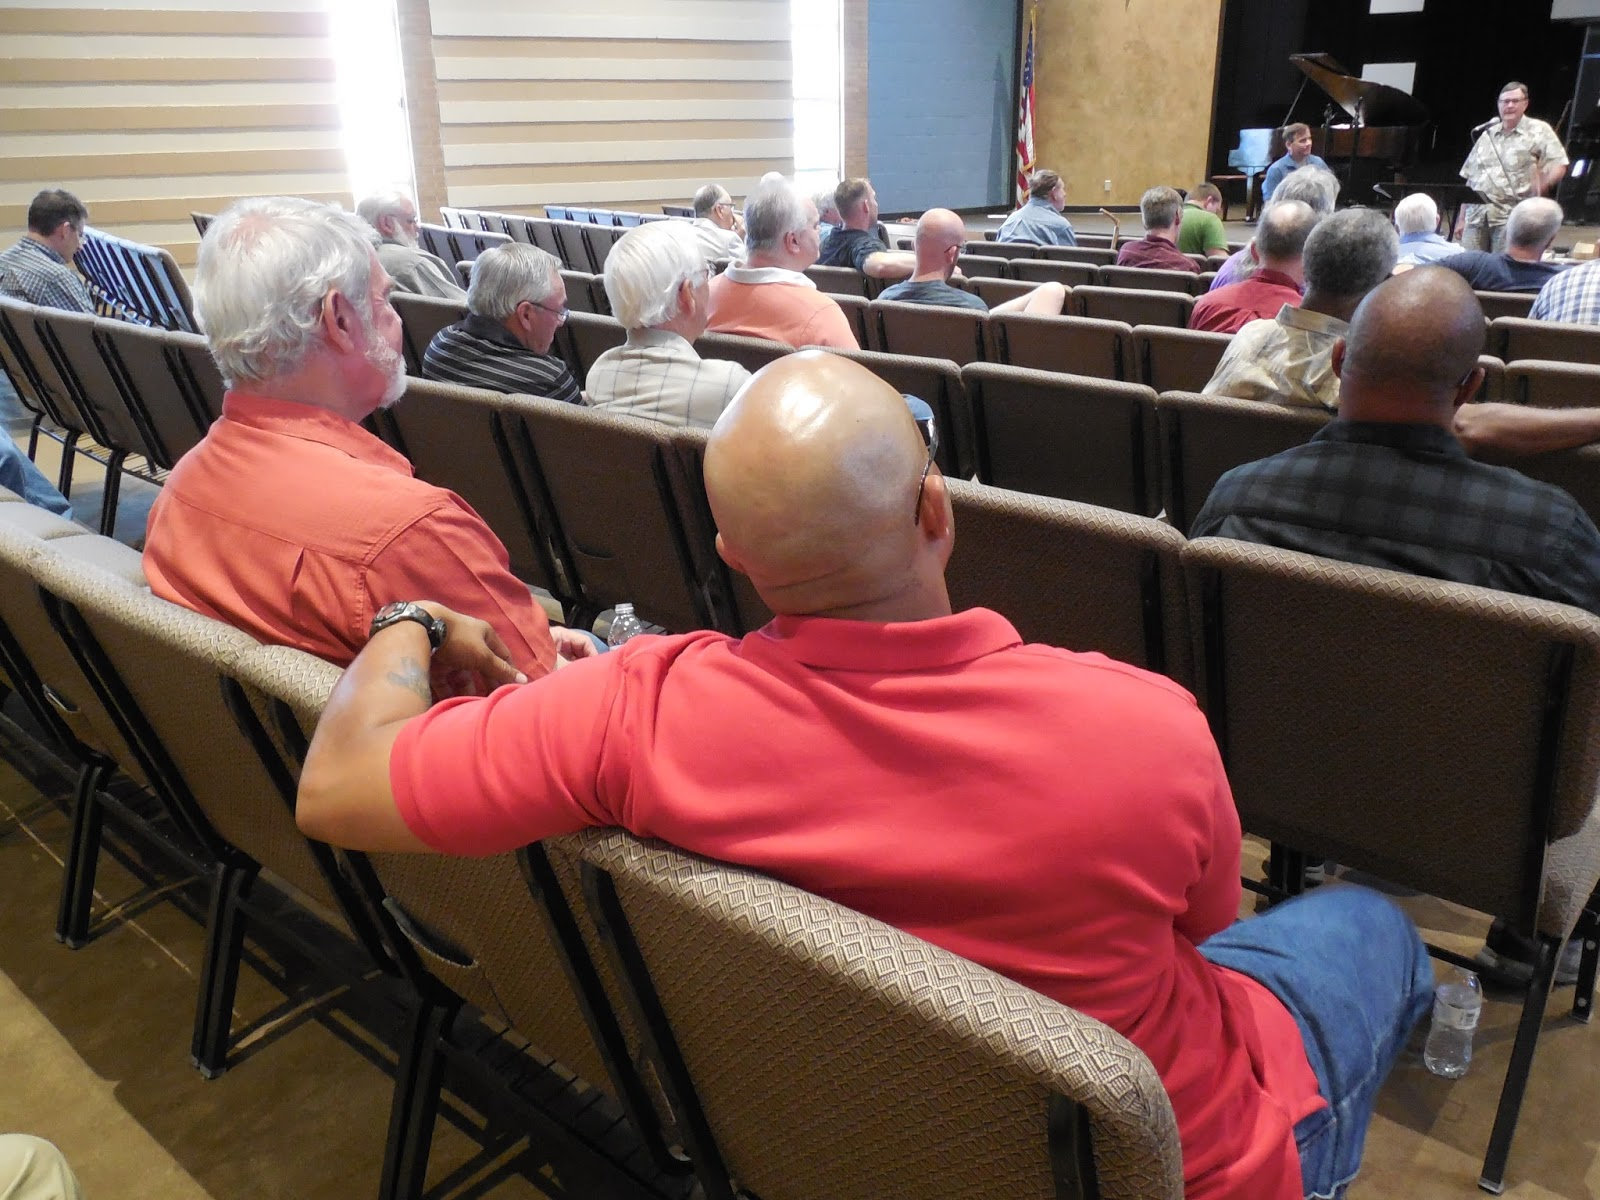 transform topeka men are enlisting in gods prayer army